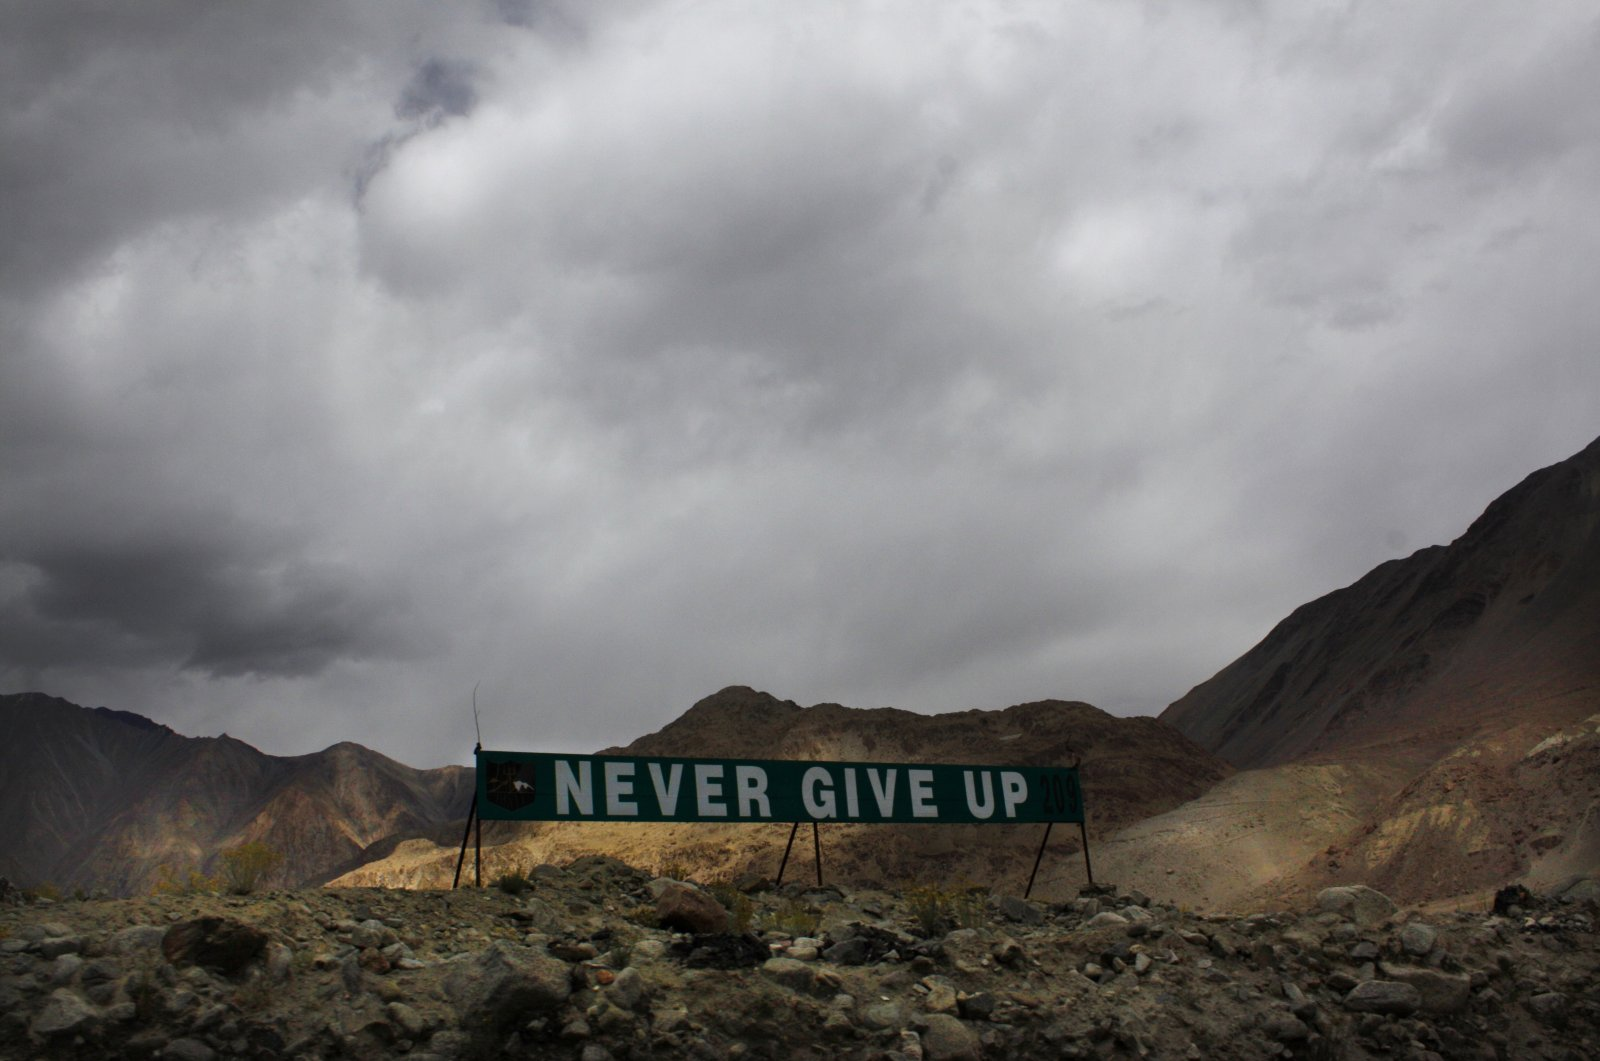 A banner erected by the Indian army stands near Pangong Tso lake near the India-China border in India's Ladakh area, Sept. 14, 2017. (AP Photo)